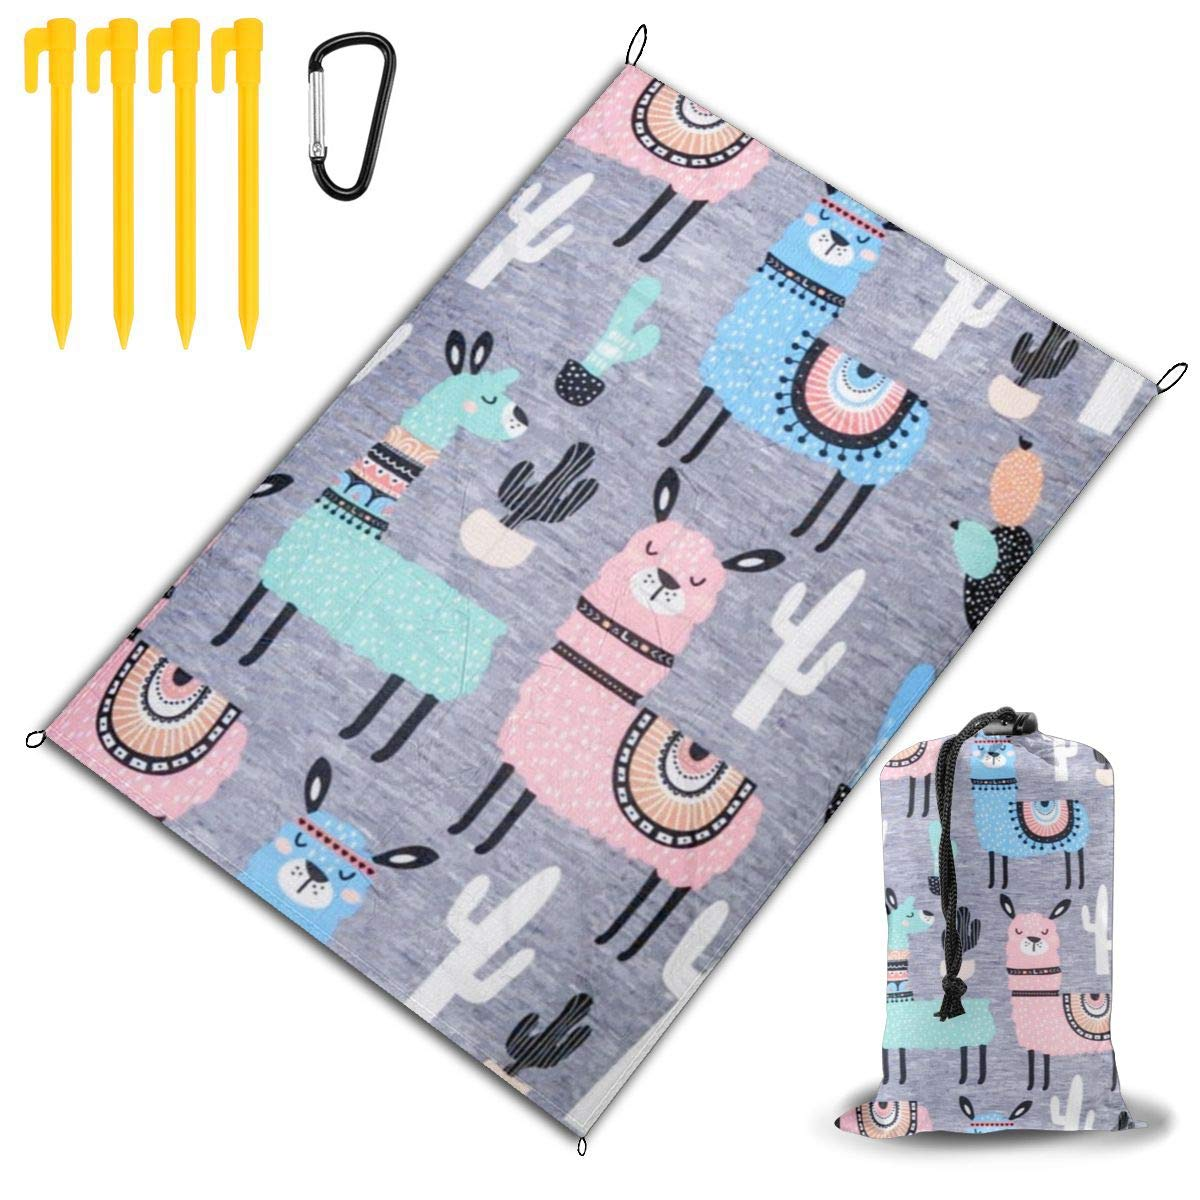 LHLX HOME Several Cartoon Llama Picnic Blanket Handy Beach Mat with Waterproof Backing Anti Sand for Picnics, Beaches, Camping and Outings 78x57 by LHLX HOME